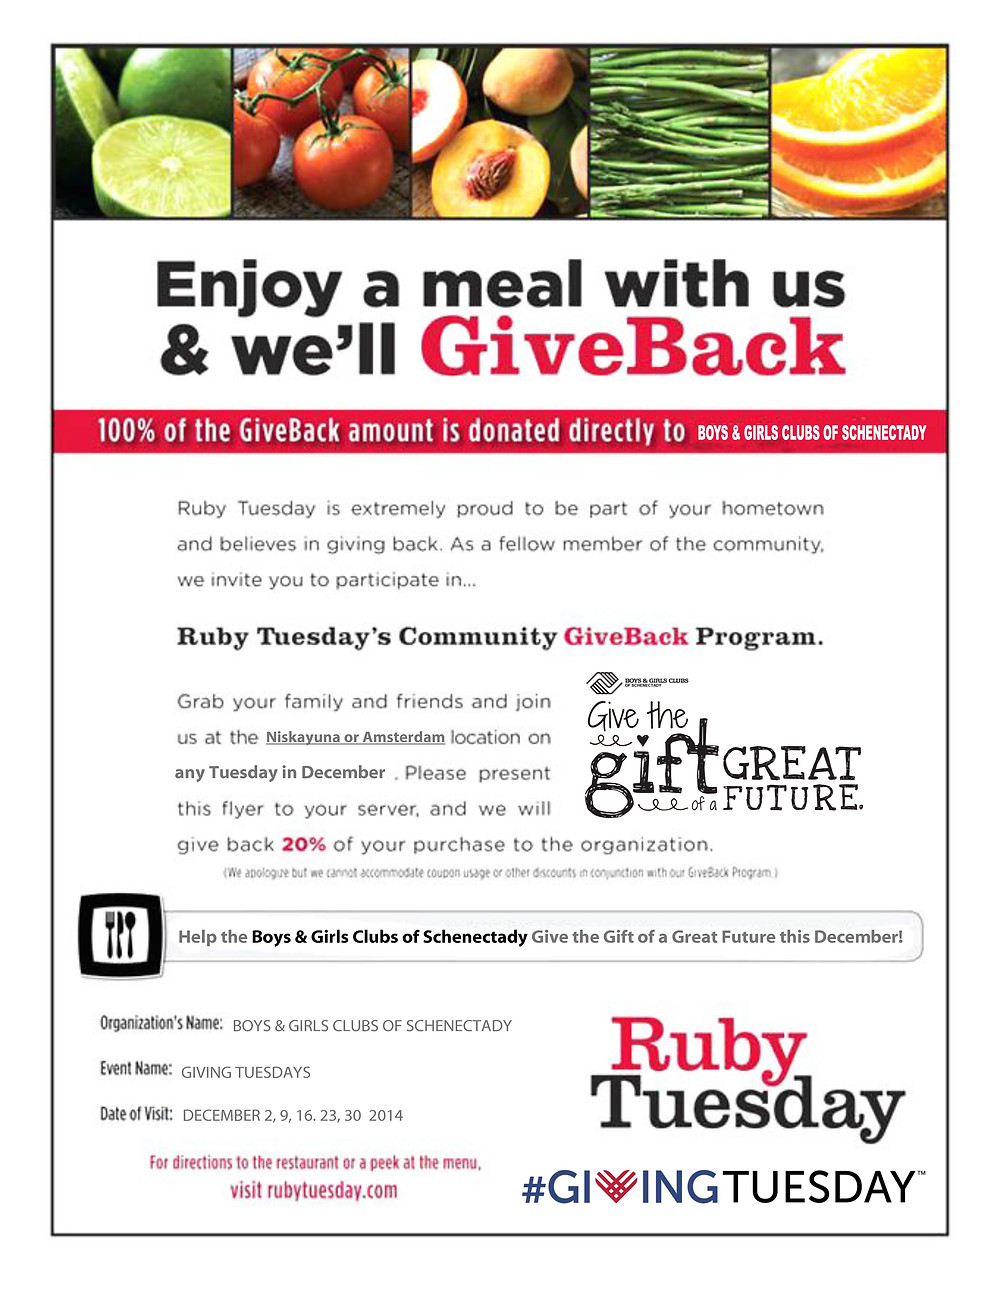 Ruby Tuesday Giving Tuesdays flyer.jpg